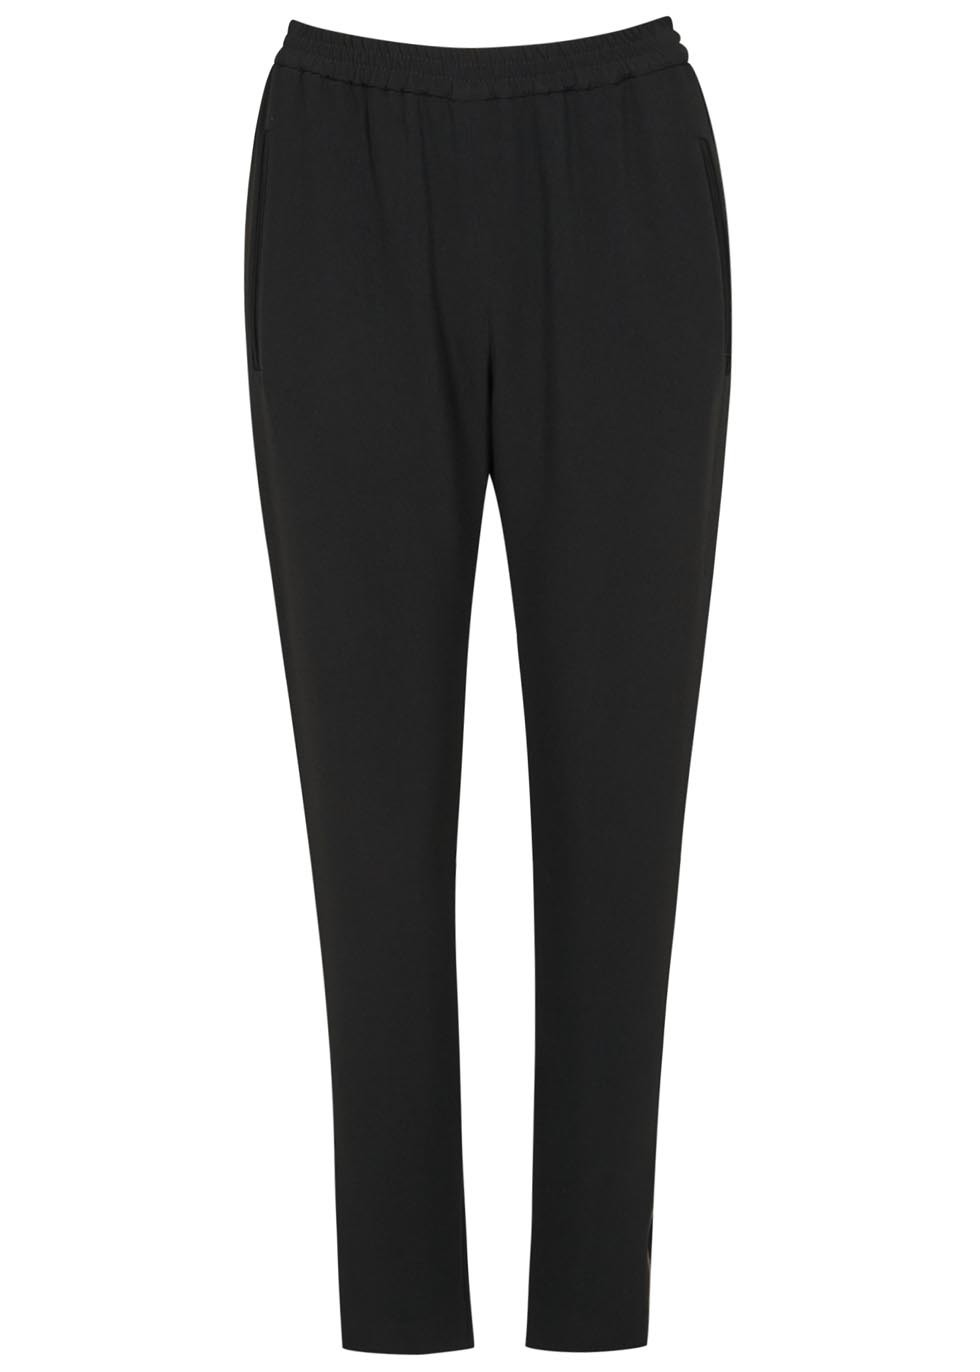 Tamara Black Crepe Trousers - pattern: plain; style: peg leg; waist: high rise; predominant colour: black; occasions: casual, creative work; length: ankle length; fibres: polyester/polyamide - mix; waist detail: feature waist detail; texture group: crepes; fit: tapered; pattern type: fabric; season: a/w 2015; wardrobe: basic